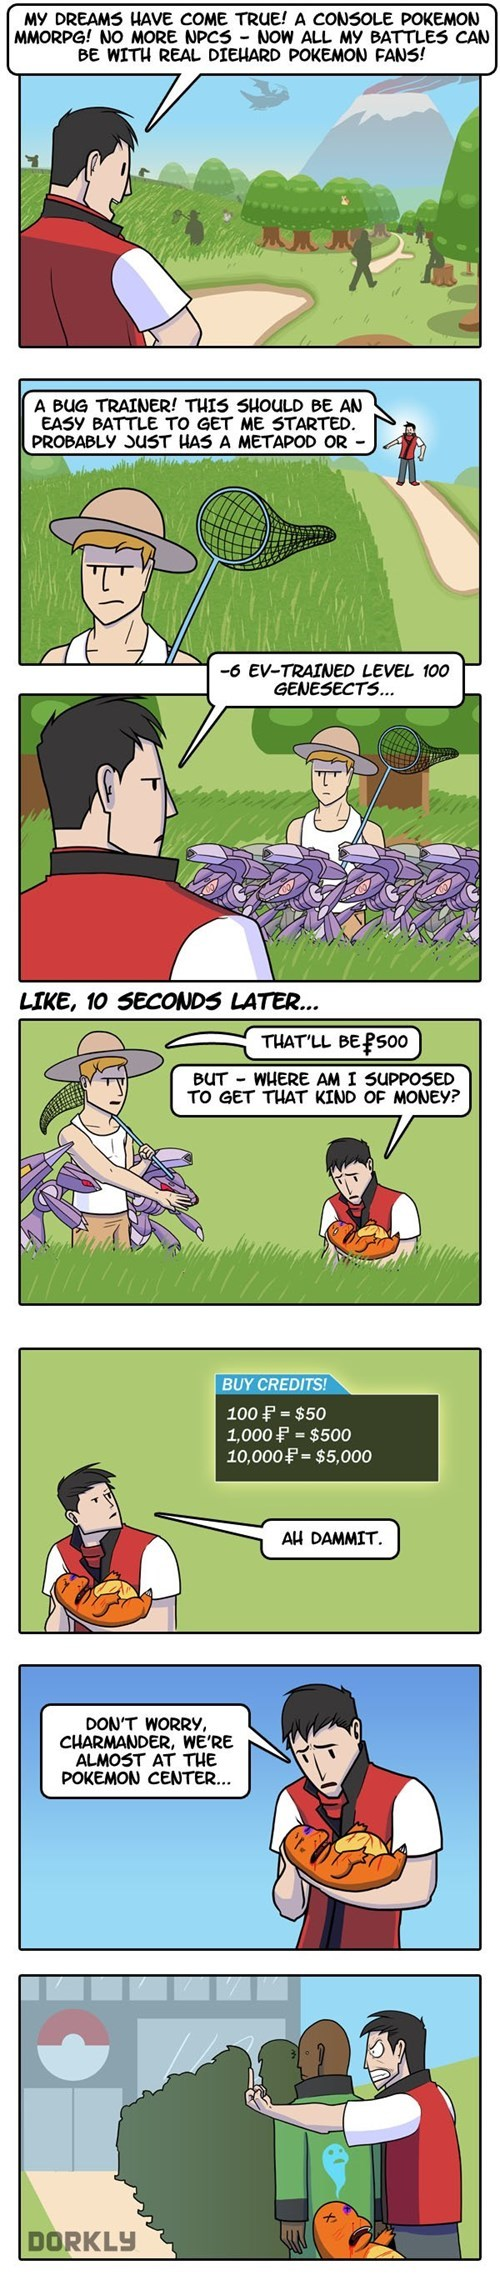 Pokémon,dorkly,web comics,MMO